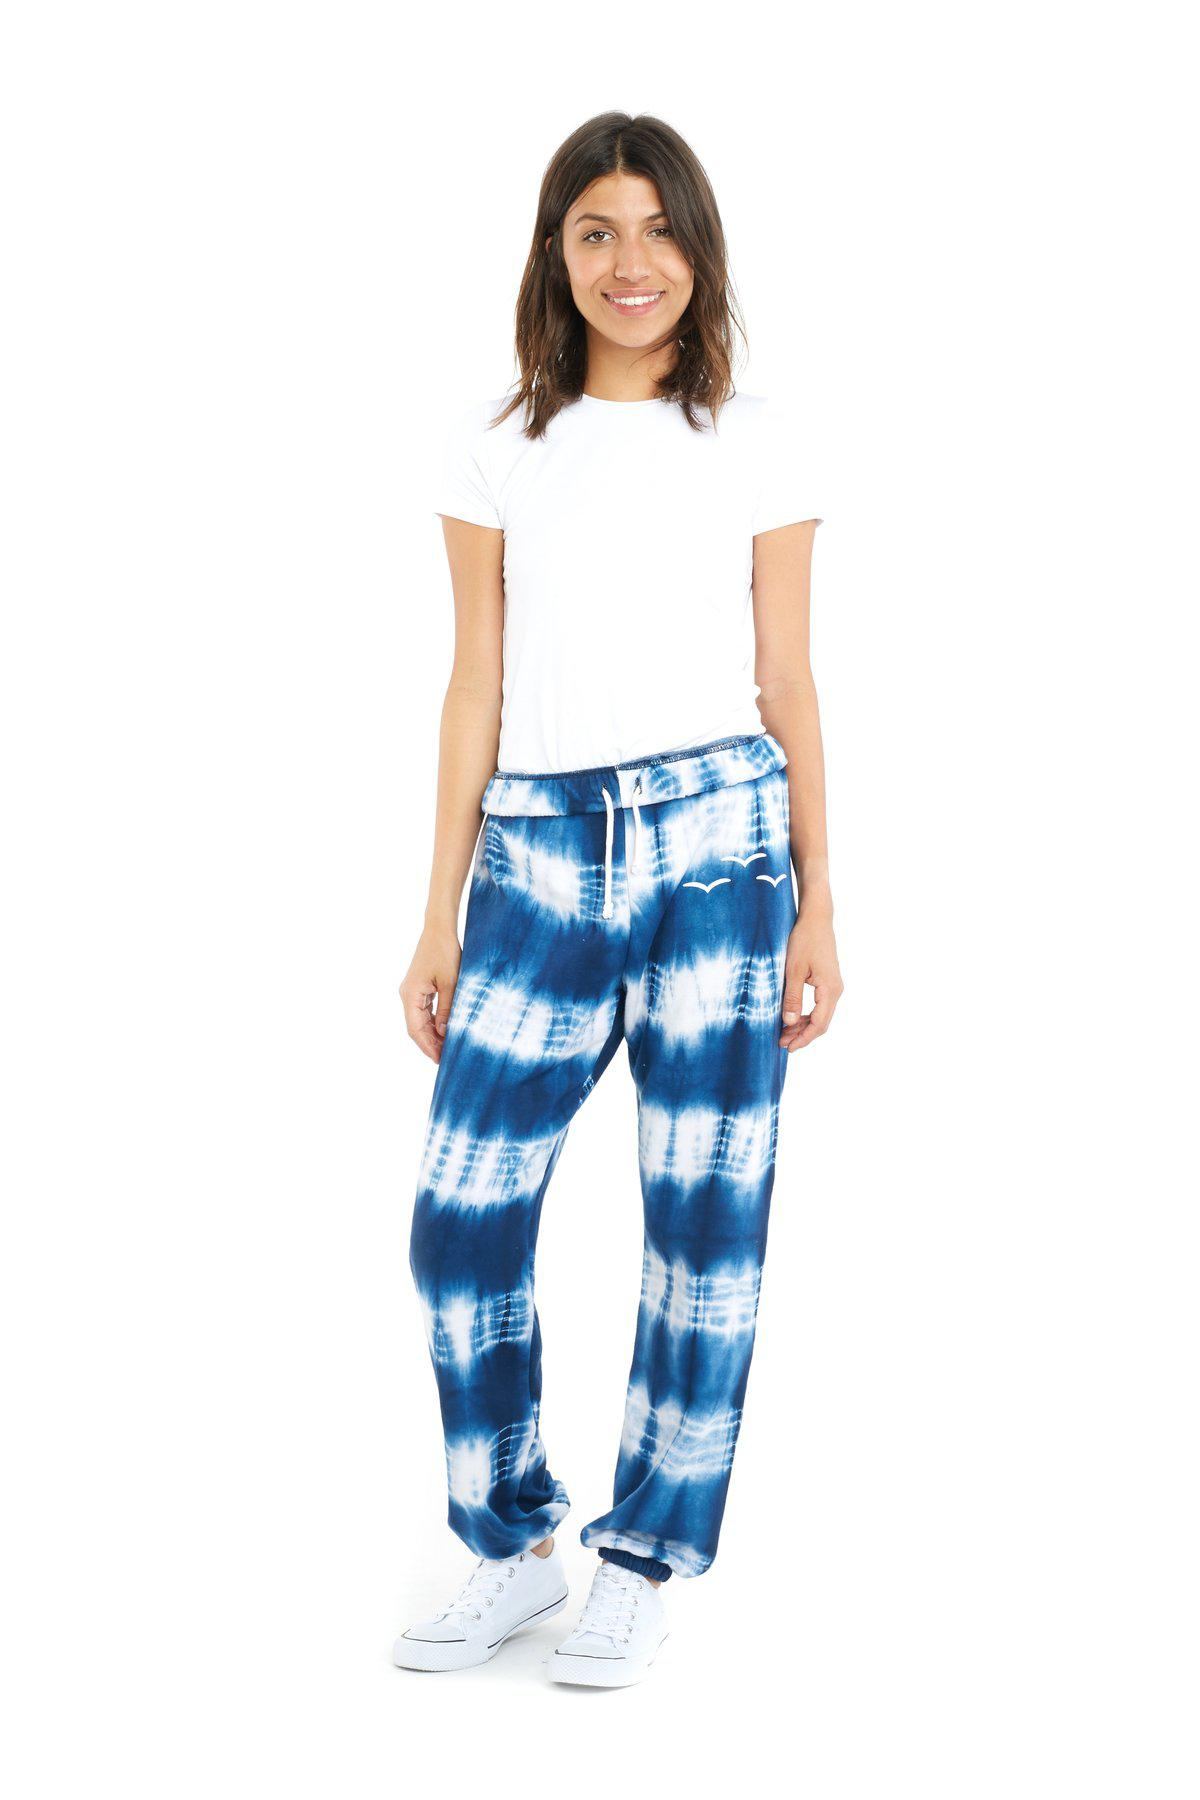 Lazypants product